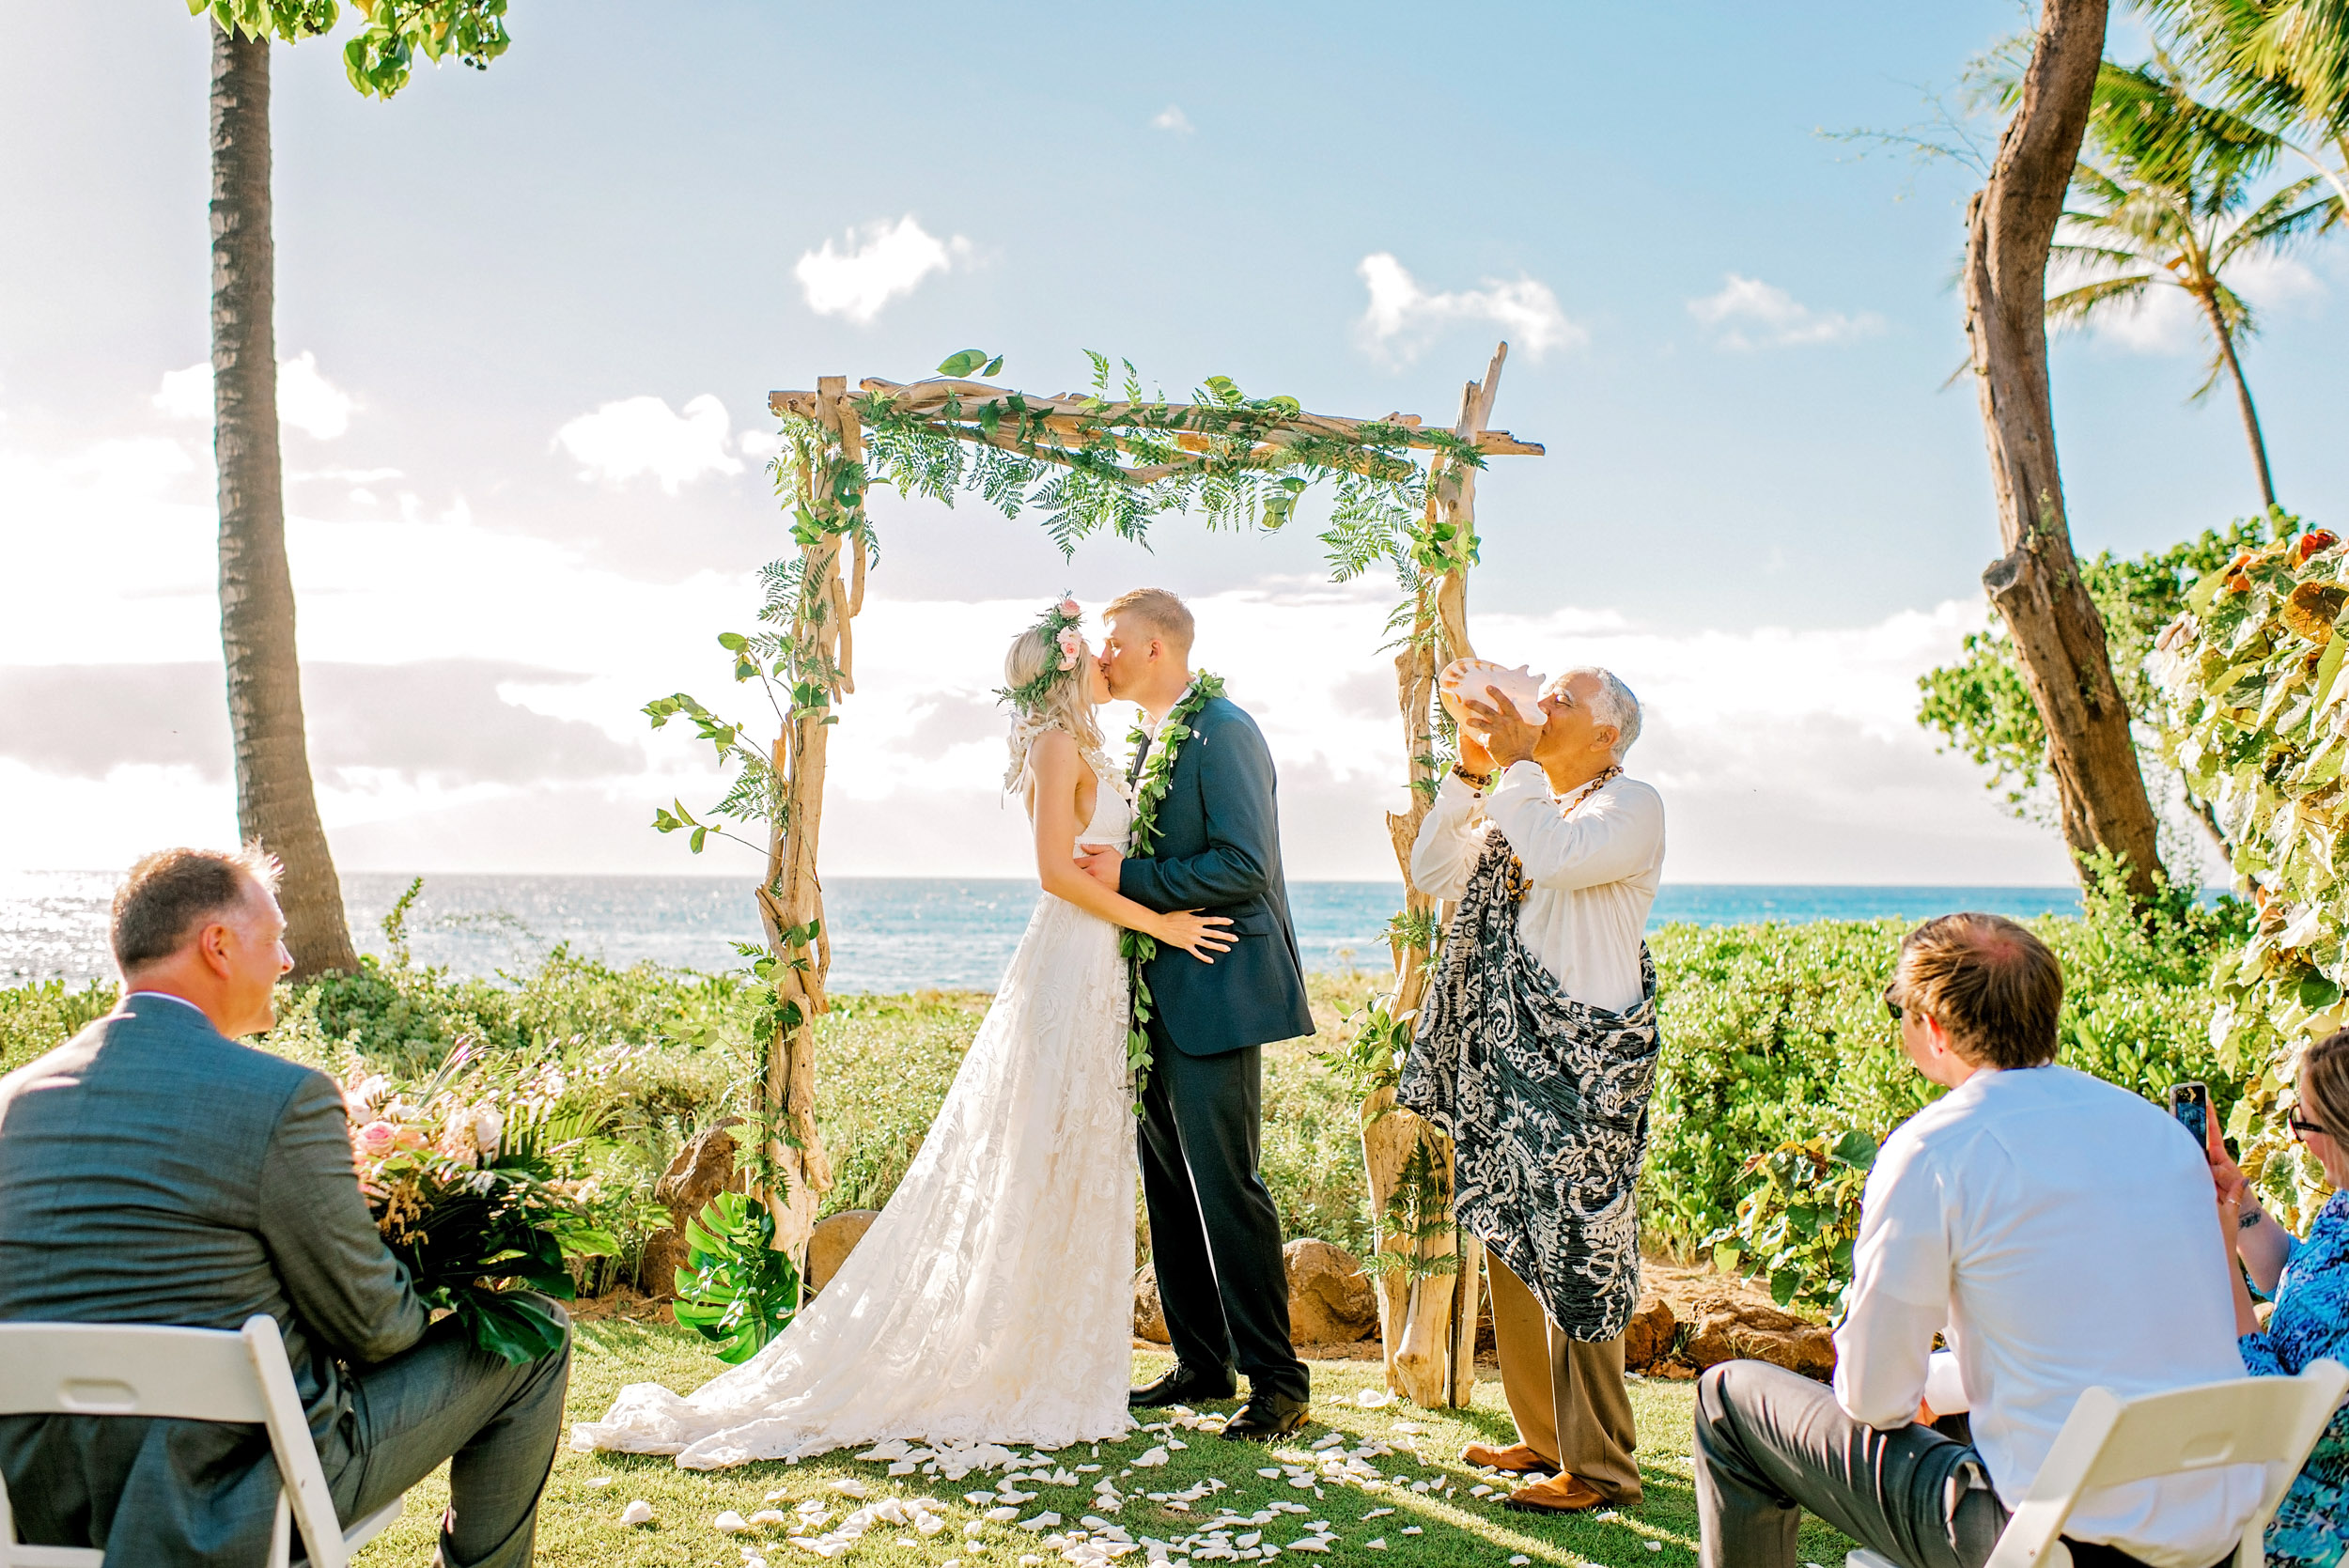 Private Venue Weddings - A ceremony at one of the island's beautiful venues or resorts